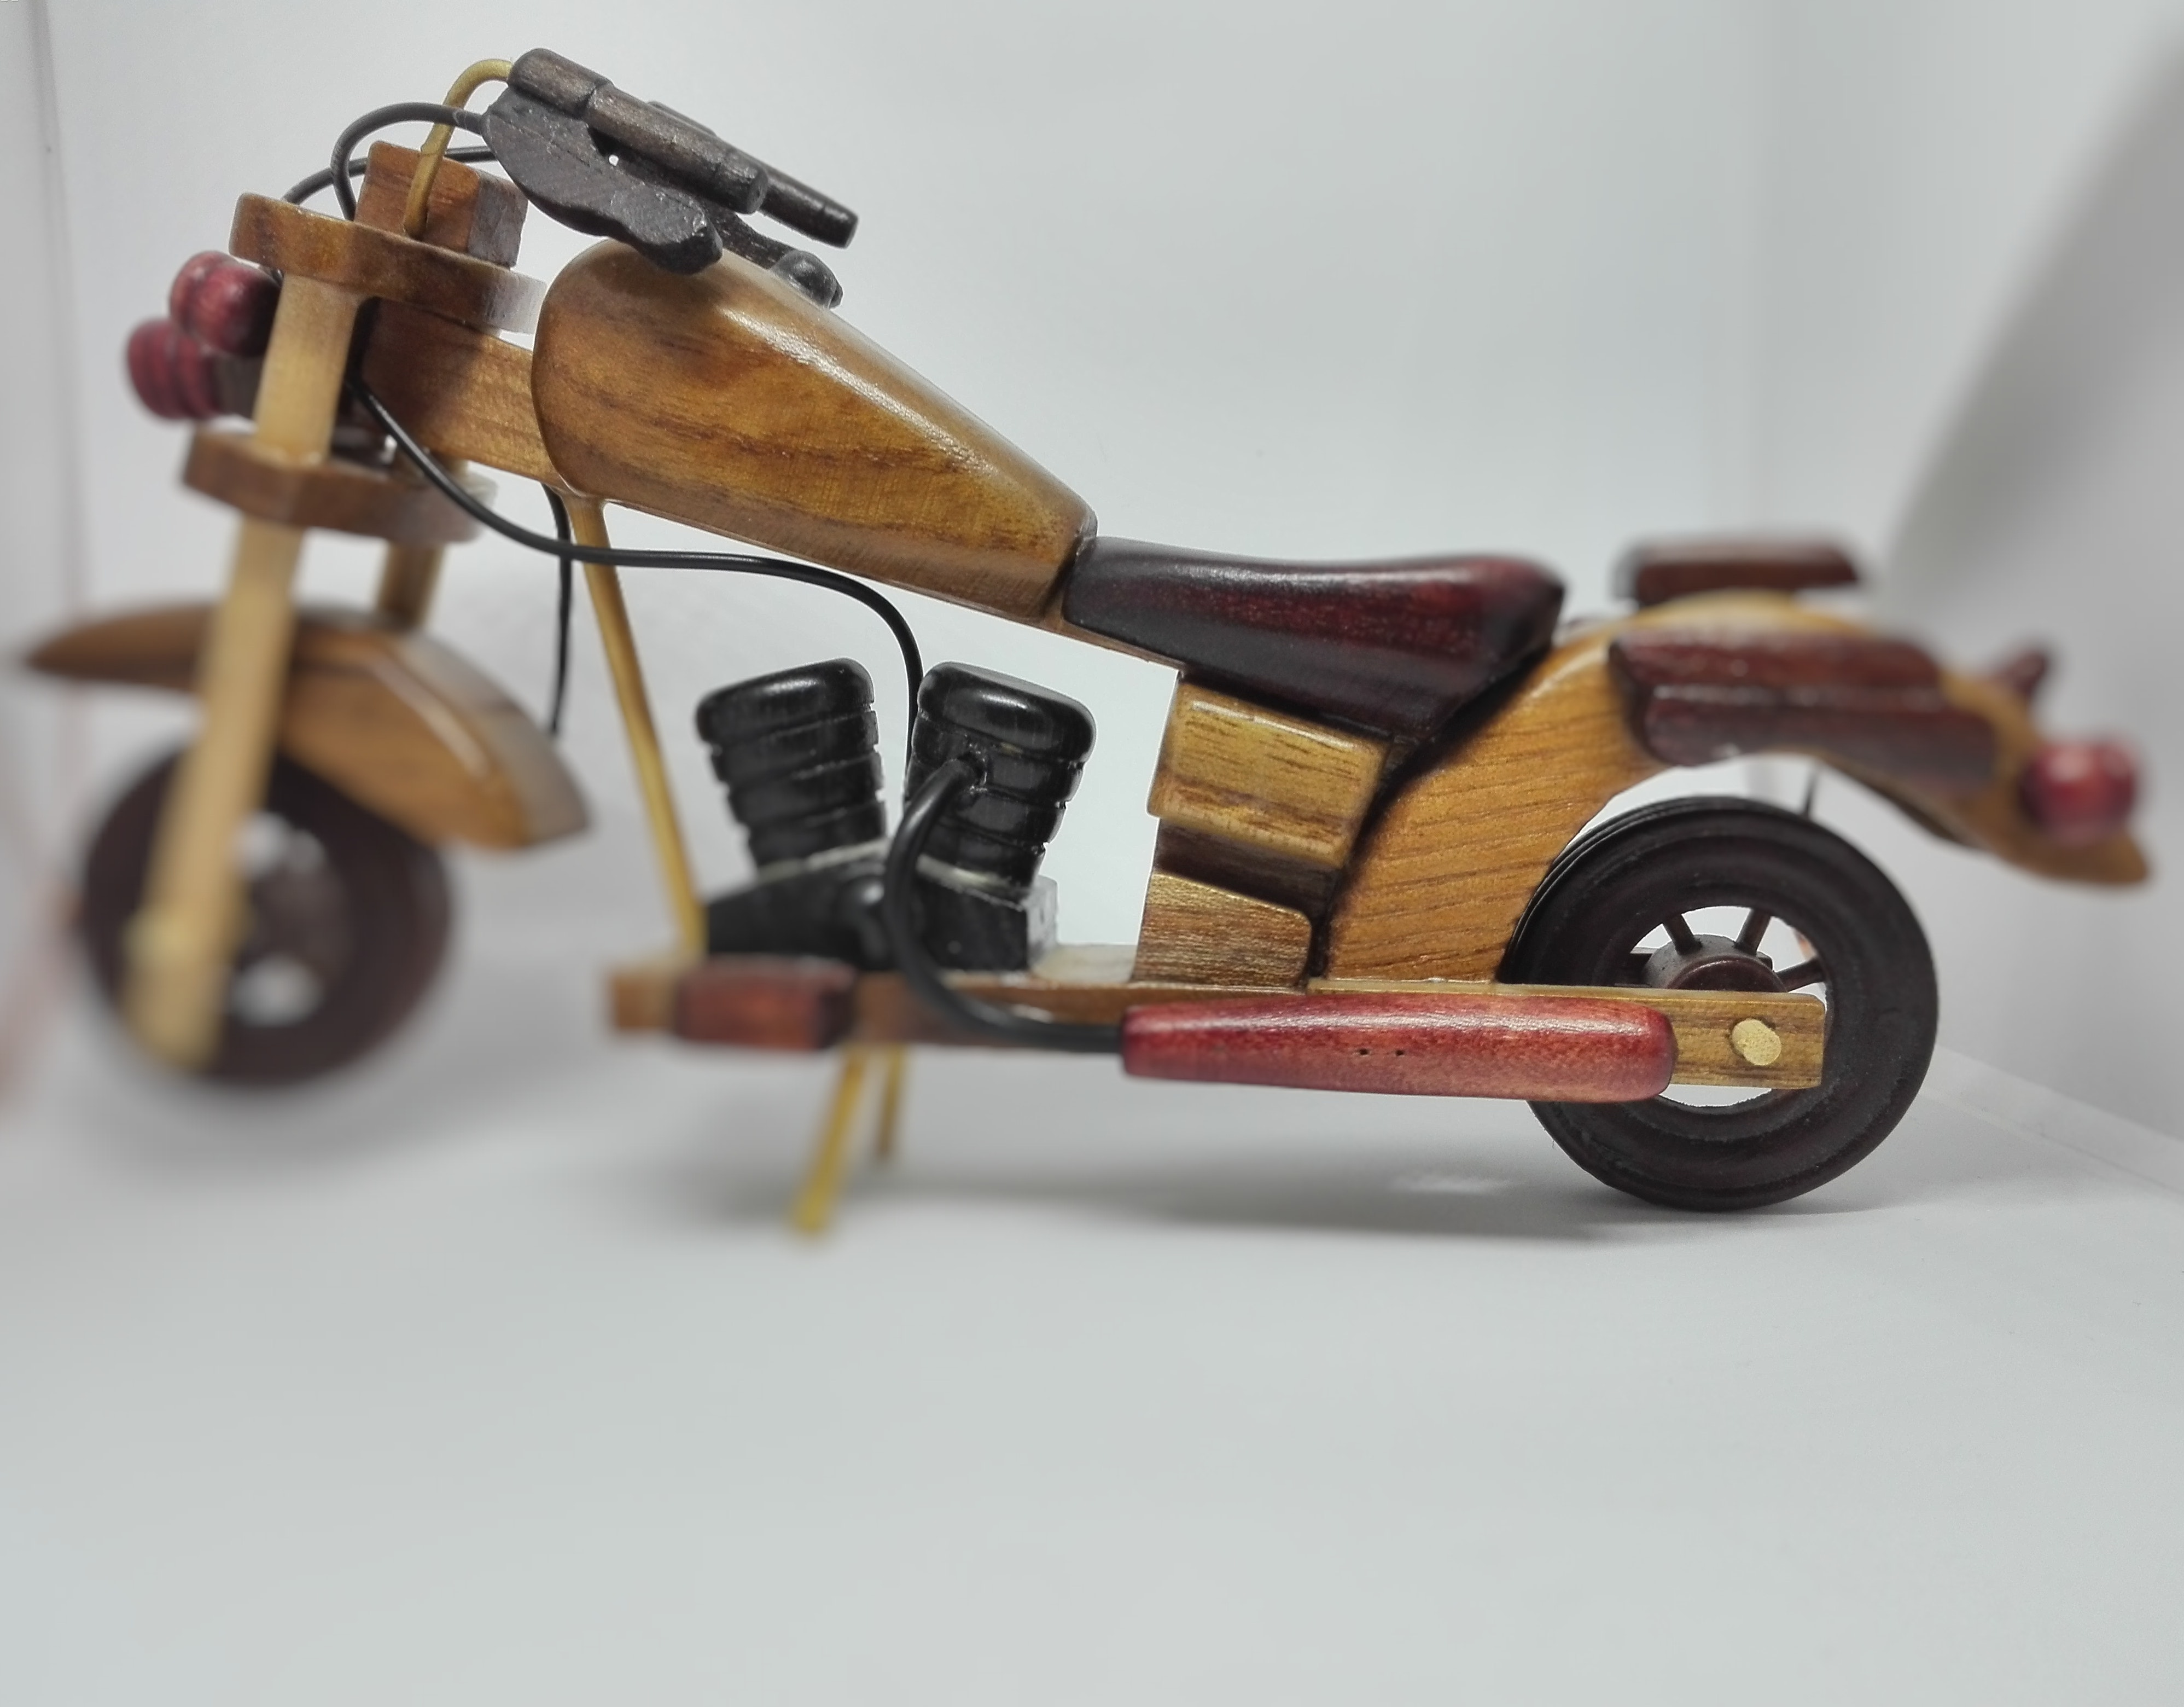 Free stock photo of wood chopper, wood motorcycle, wood toy